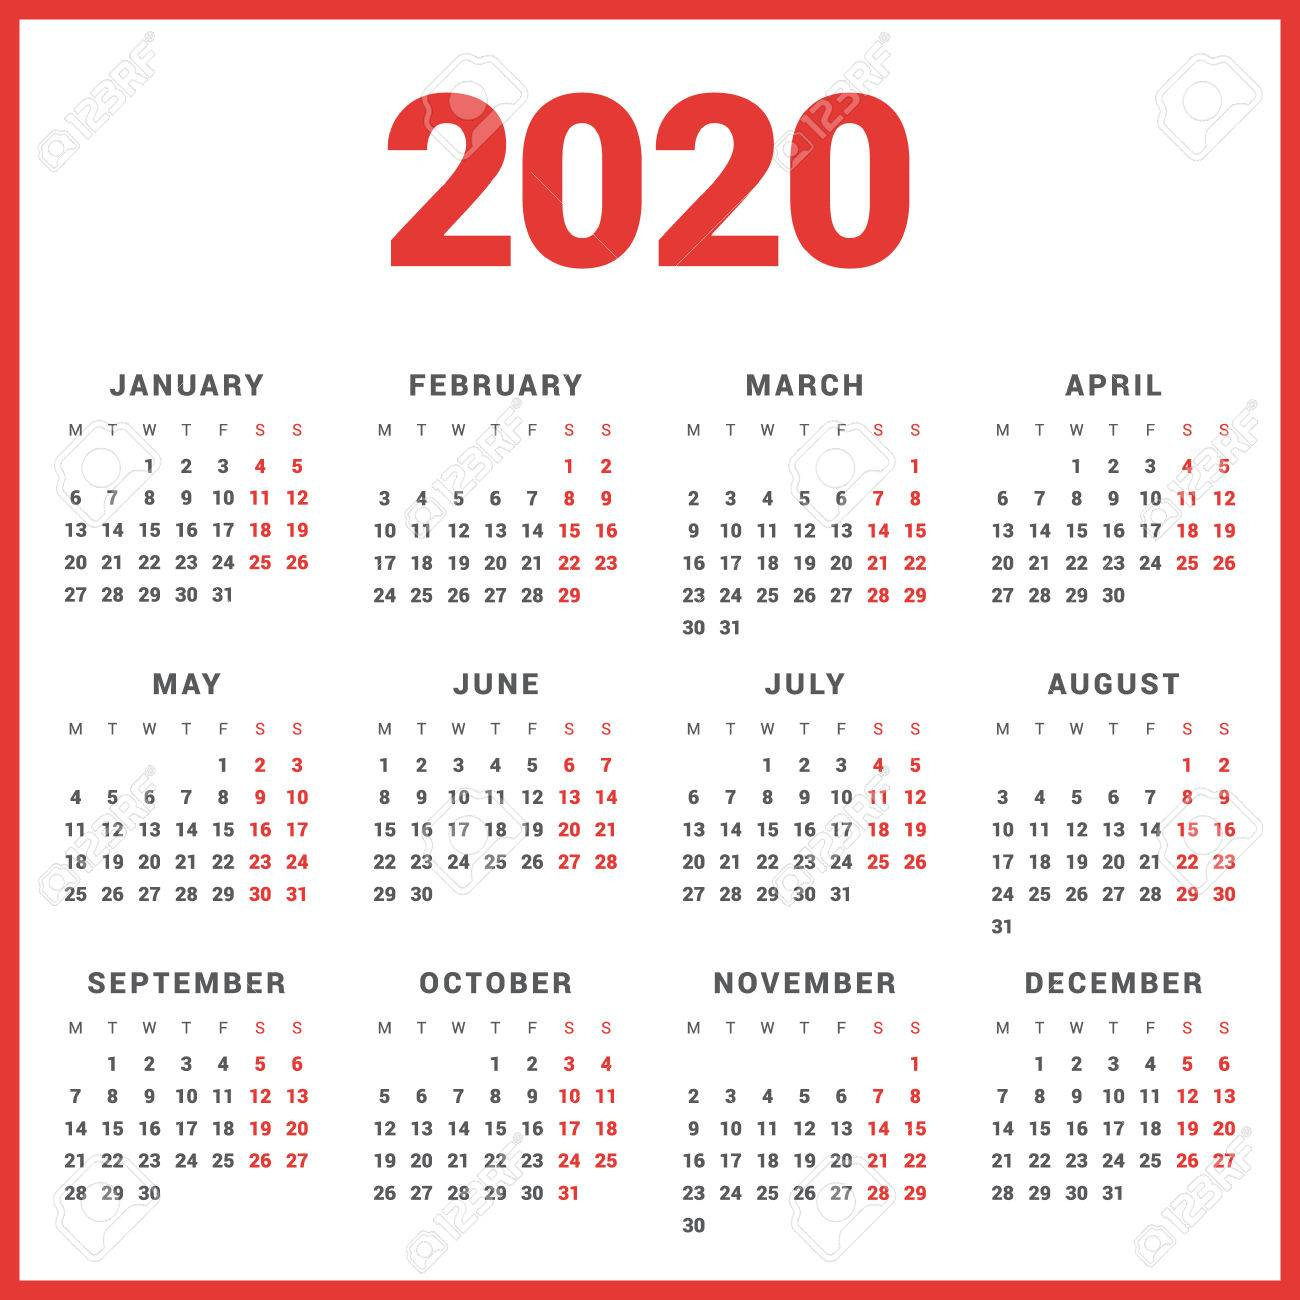 Calendar For 2020 Year On White Background. Week Starts Monday within 2020 Calendar Mondays